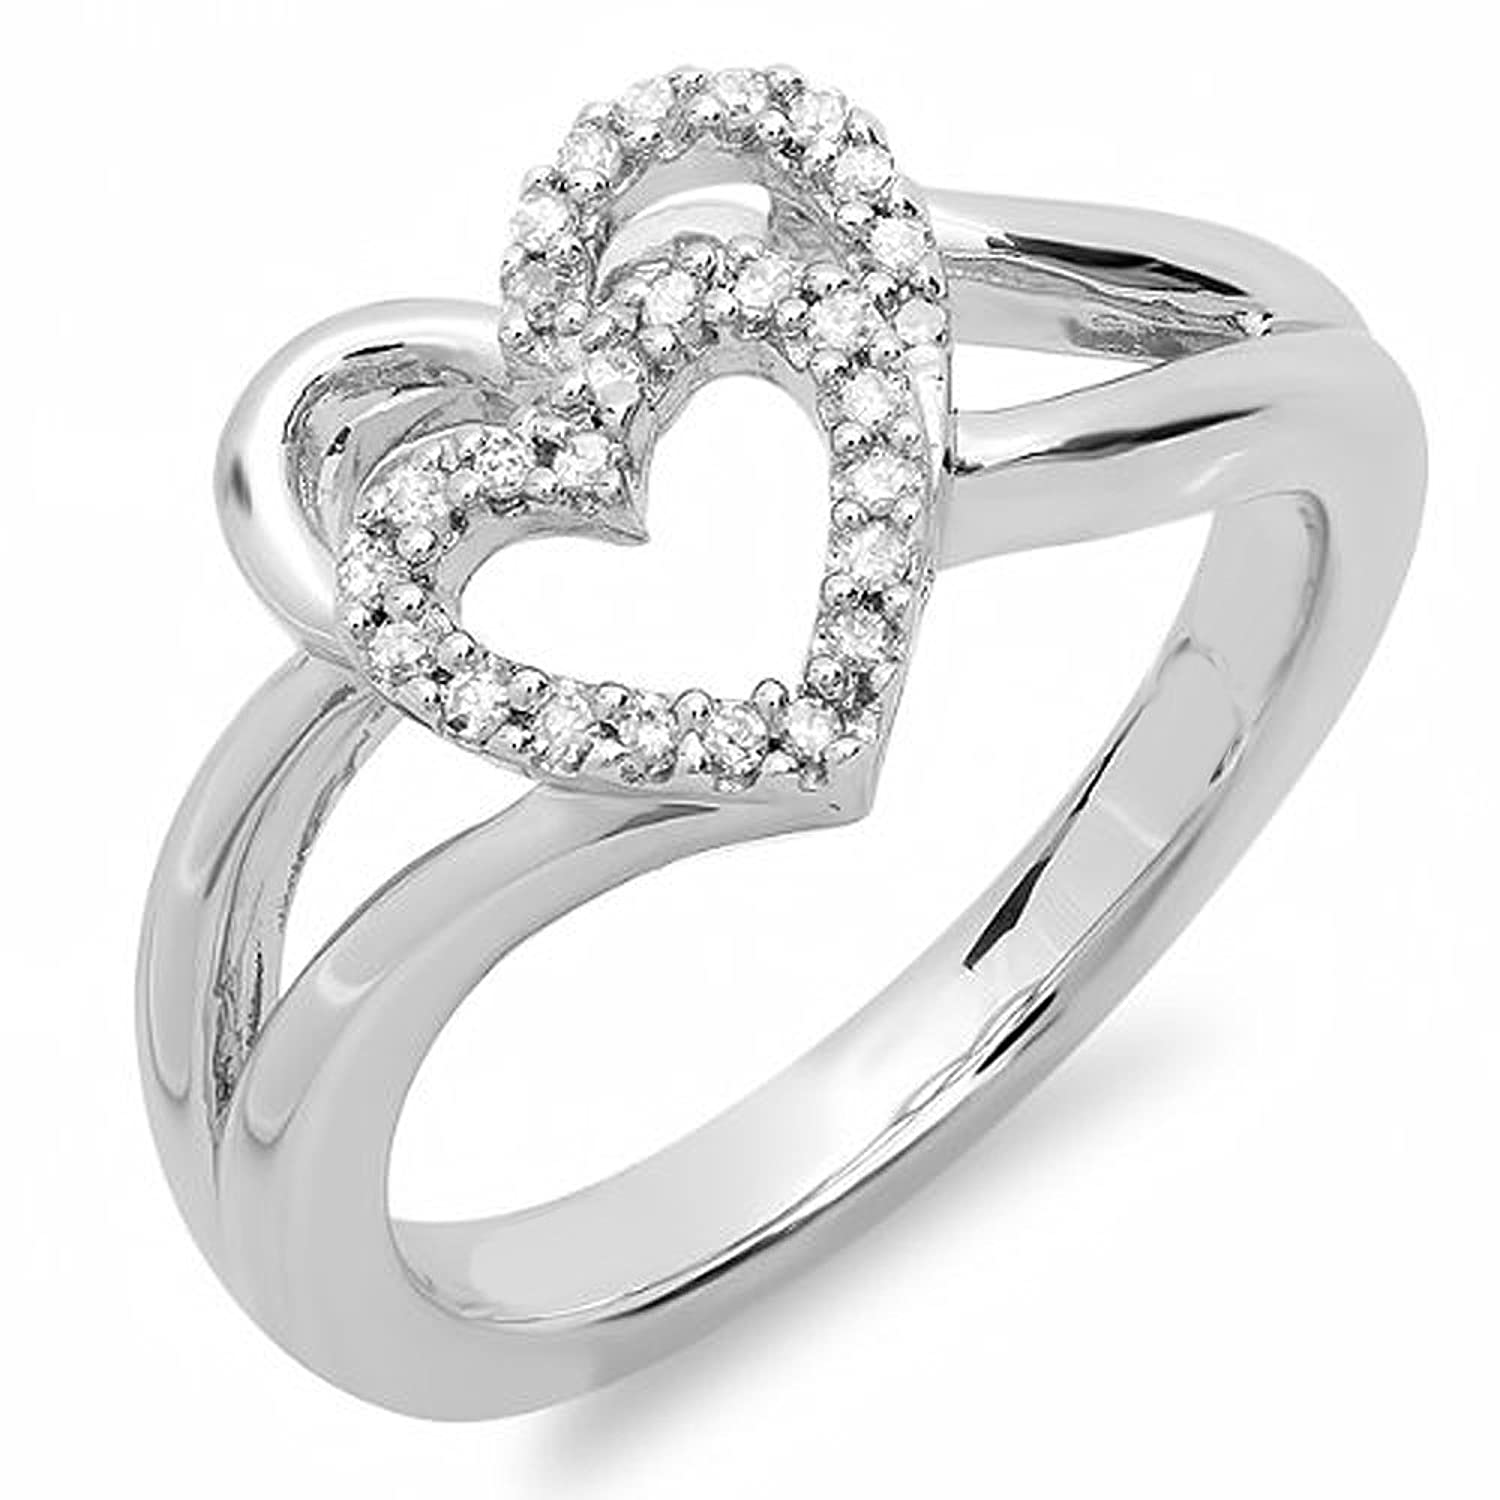 0.15 Carat (ctw) Sterling Silver Round White Diamond Ladies Promise Double Heart Love Engagement Ring